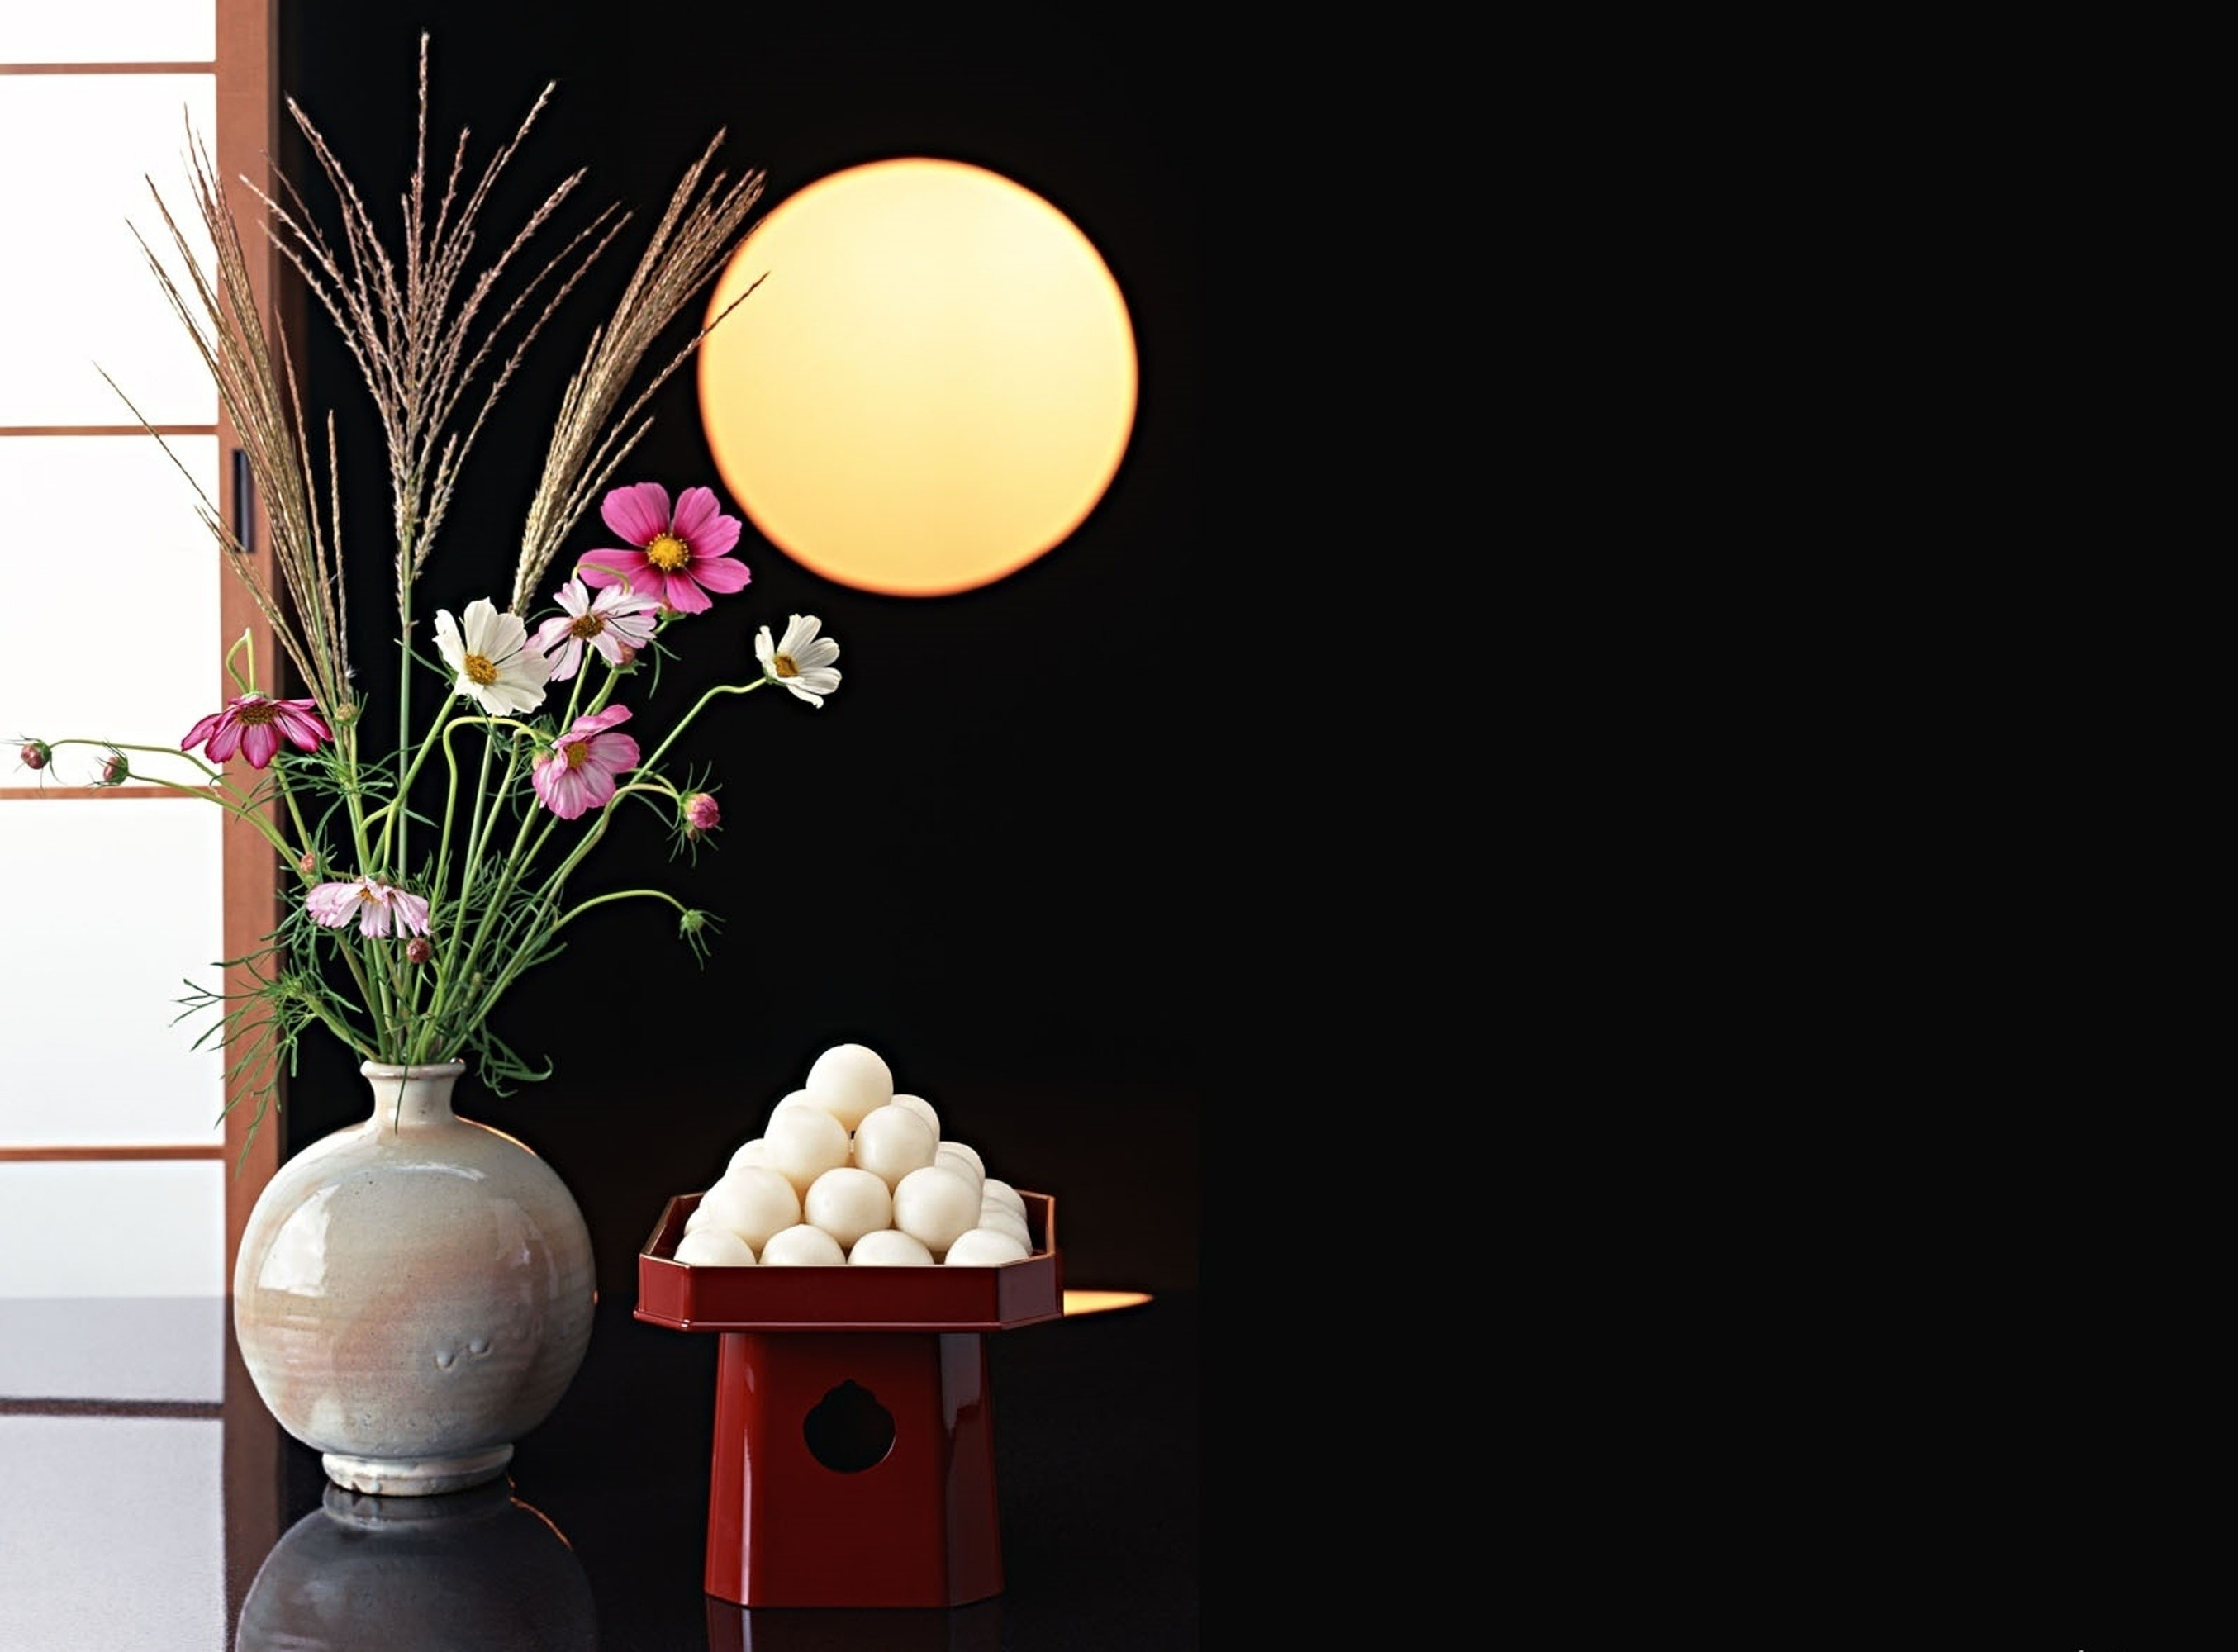 Res: 2709x2000, 3D wallpapers. black background, the moon, sliding wall, vase, ikebana